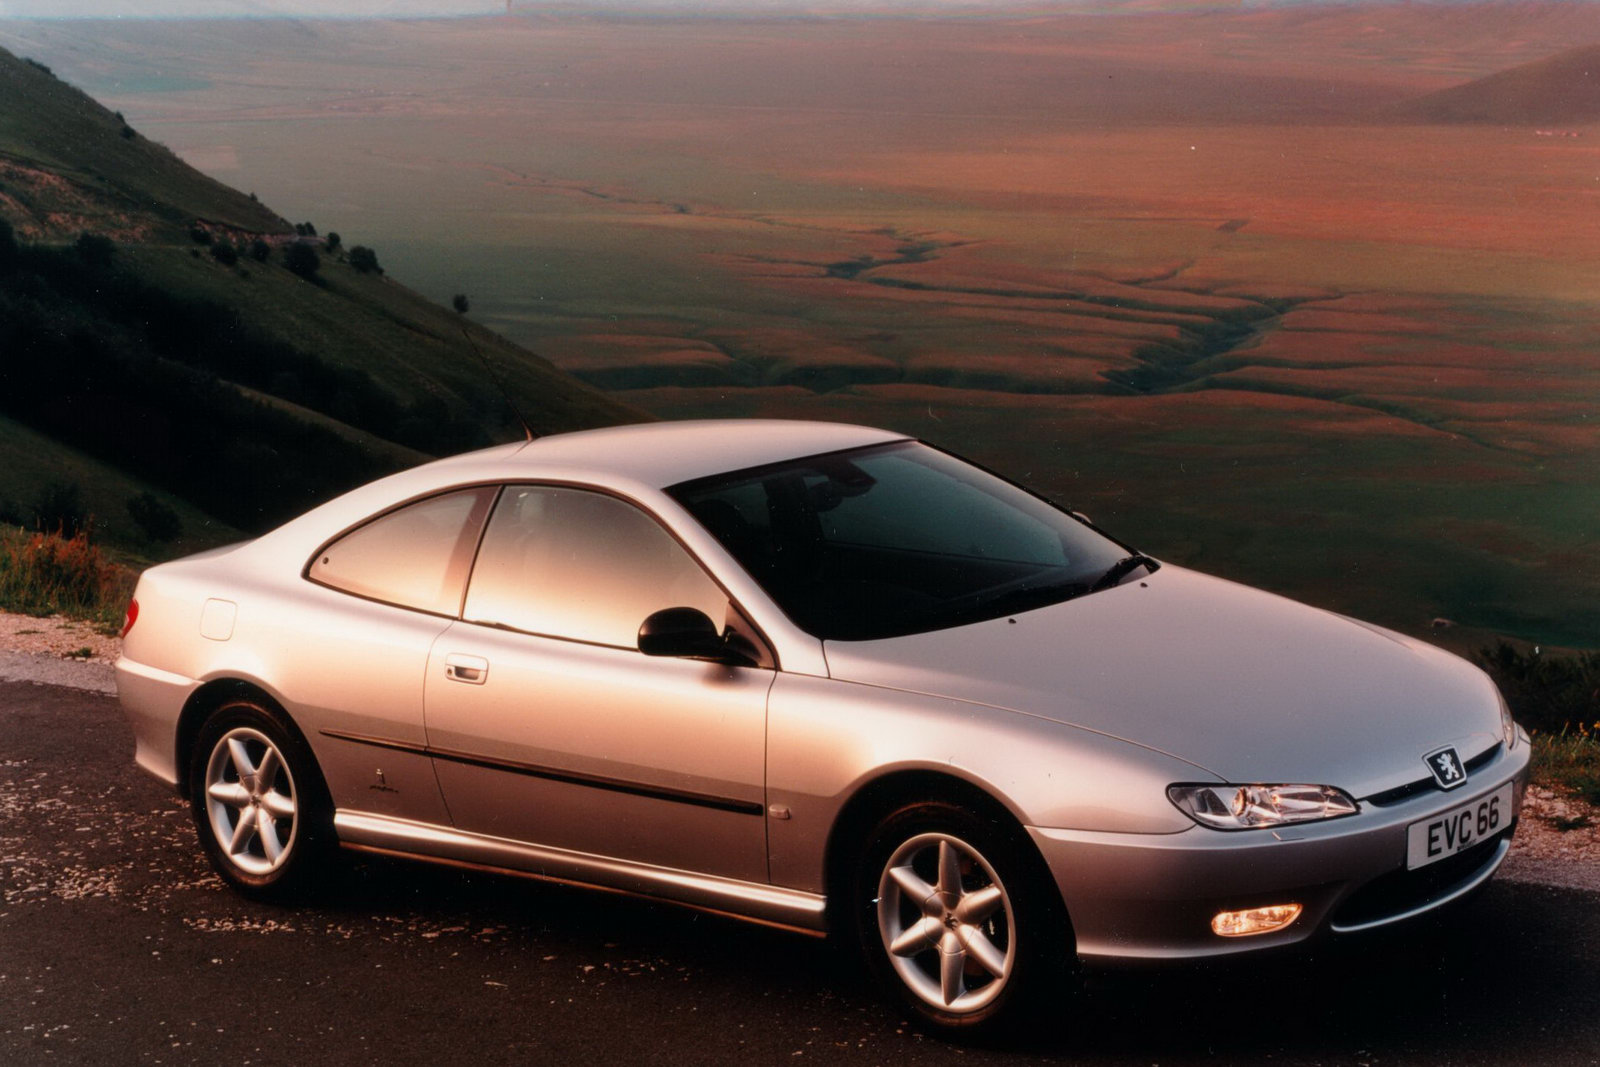 lion of beauty 1997 peugeot 406 coup driven to write. Black Bedroom Furniture Sets. Home Design Ideas